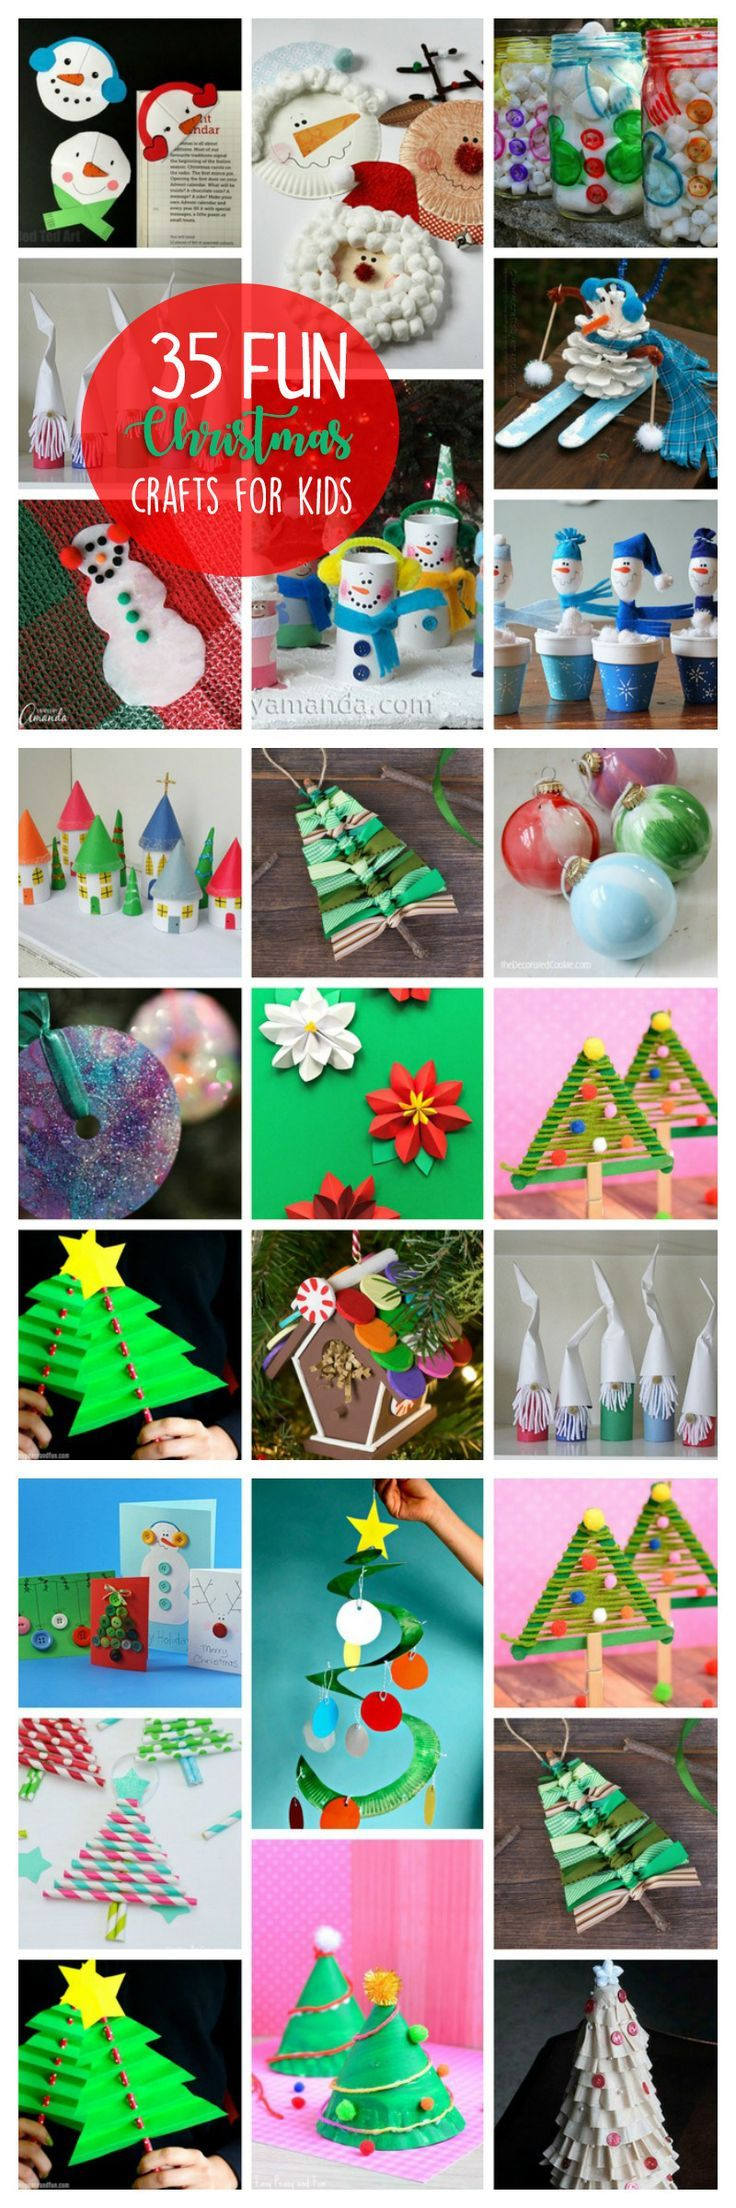 This collection of Christmas crafts for kids has something for everyone! Grab several of these fun and easy Christmas projects the kids will love! #christmascrafts #christmas #kidscrafts #holidaycrafts